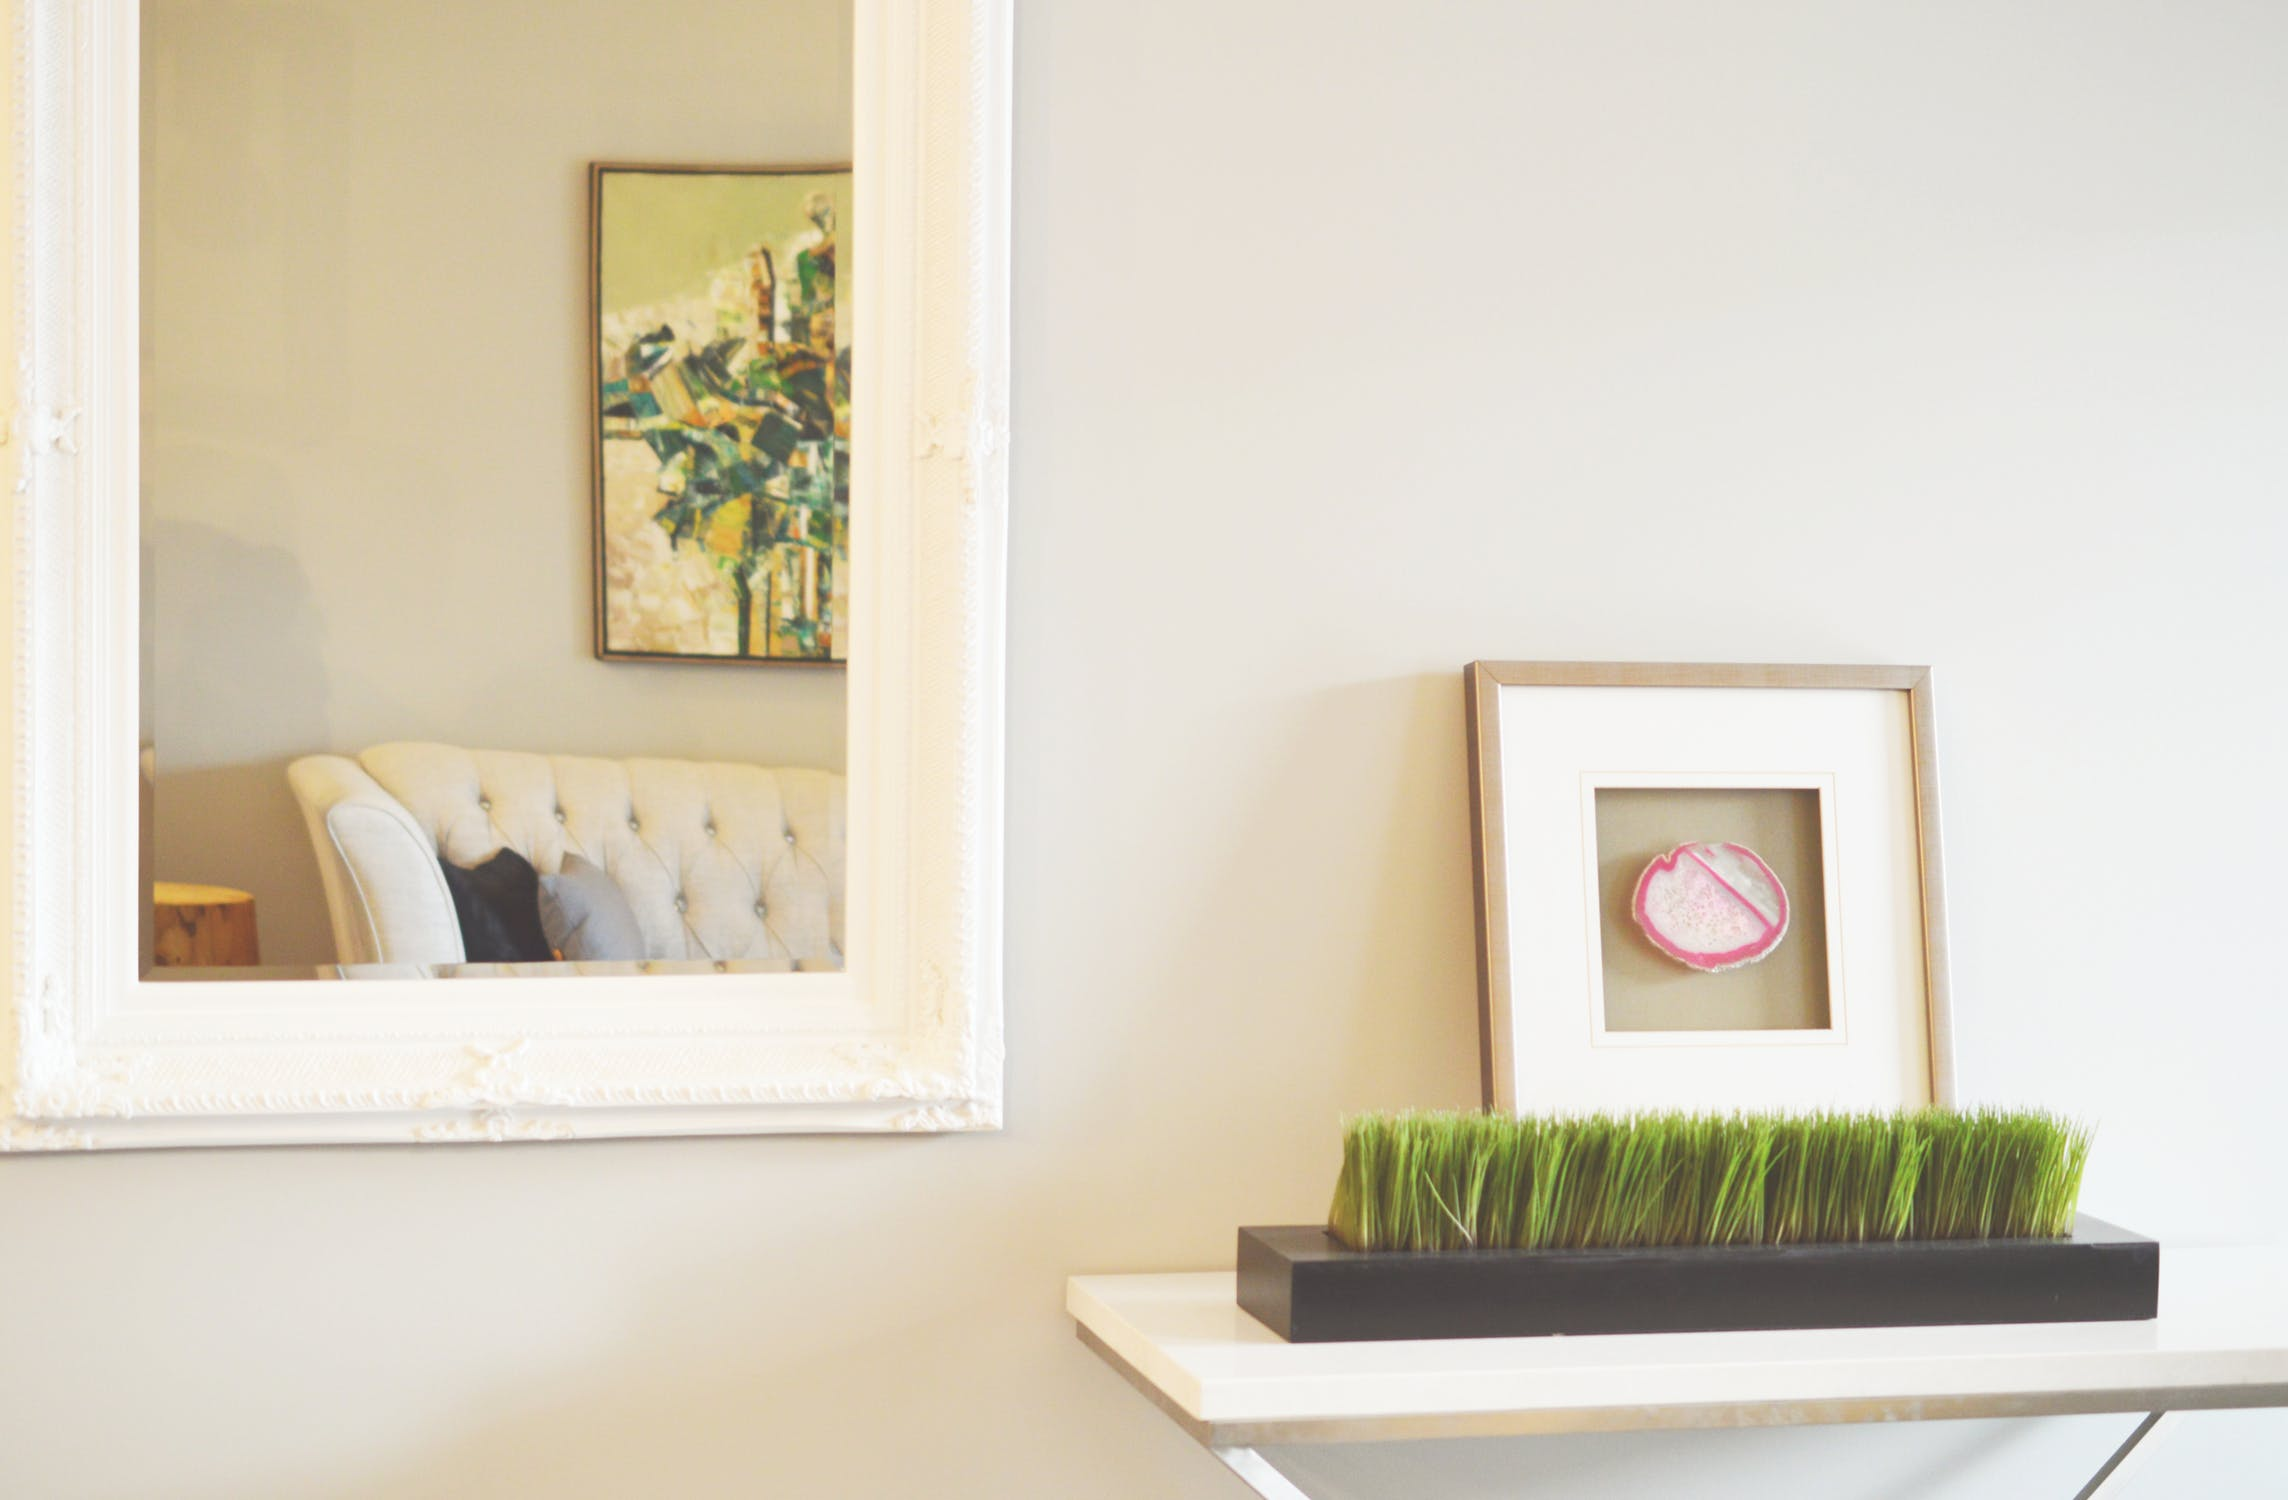 HOW TO DECORATE YOUR APARTMENT WITH MIRRORS - Riello Blog